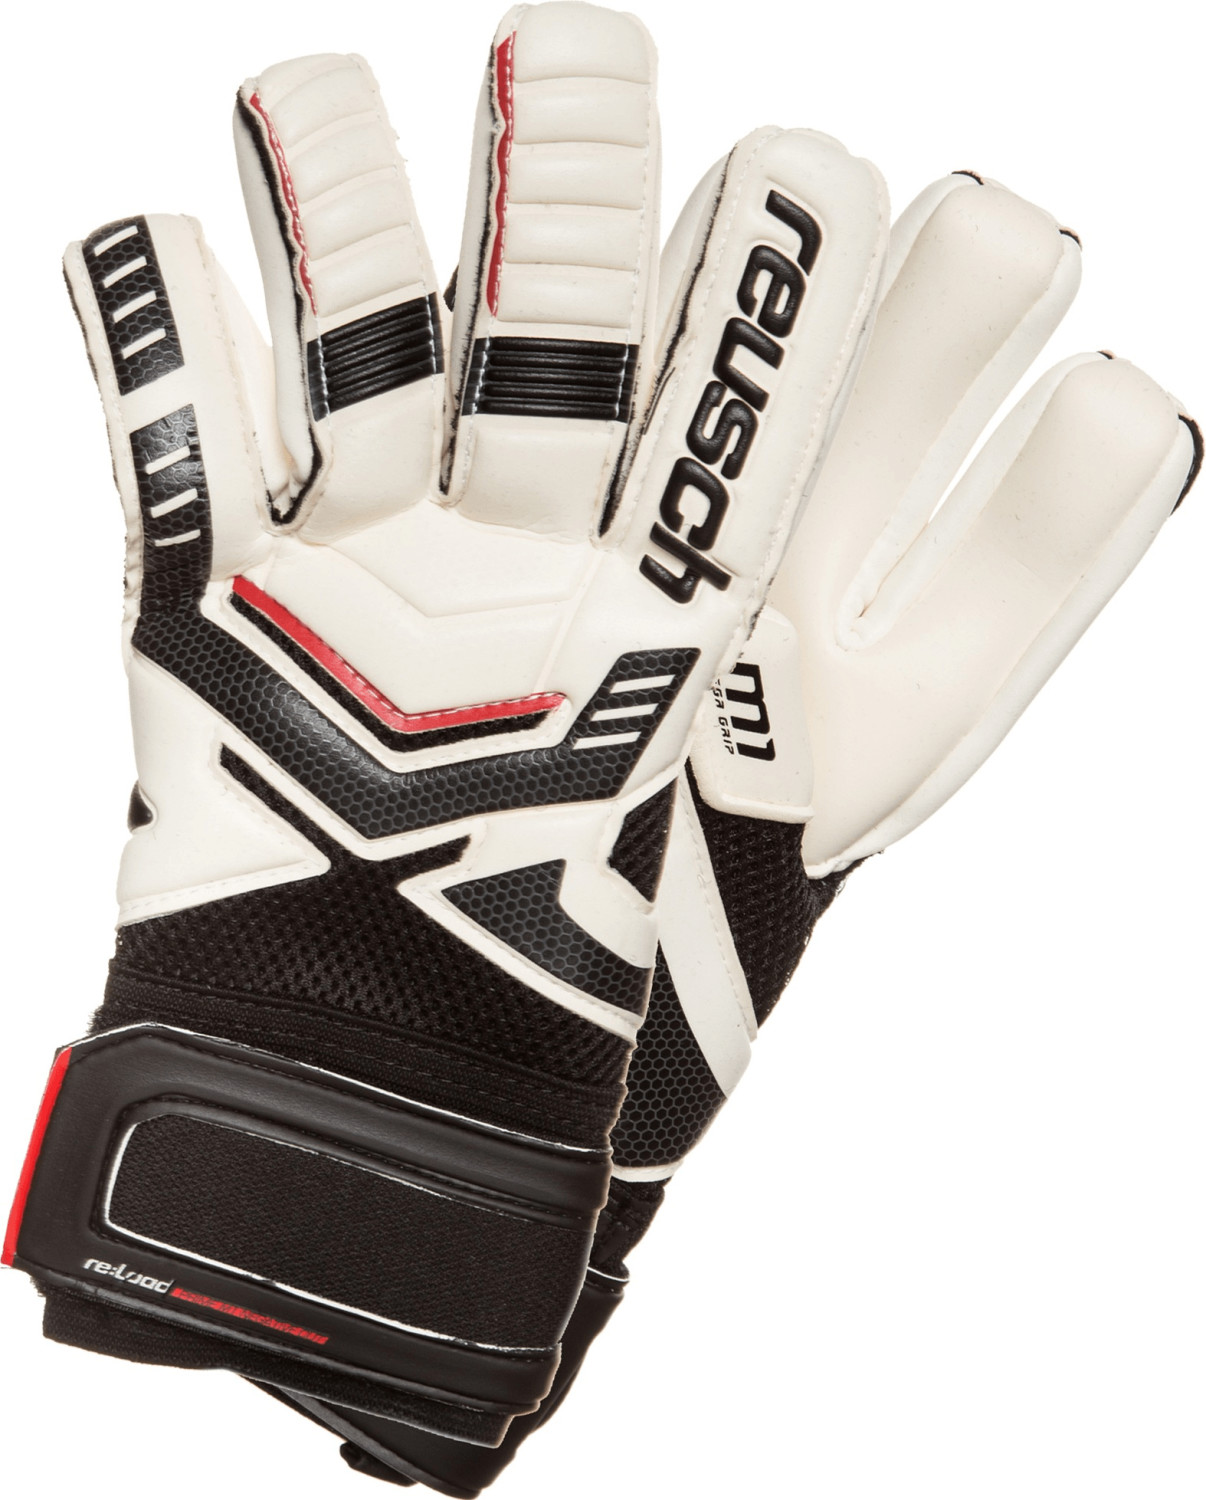 Reusch Re:load Prime M1 Negative Cut